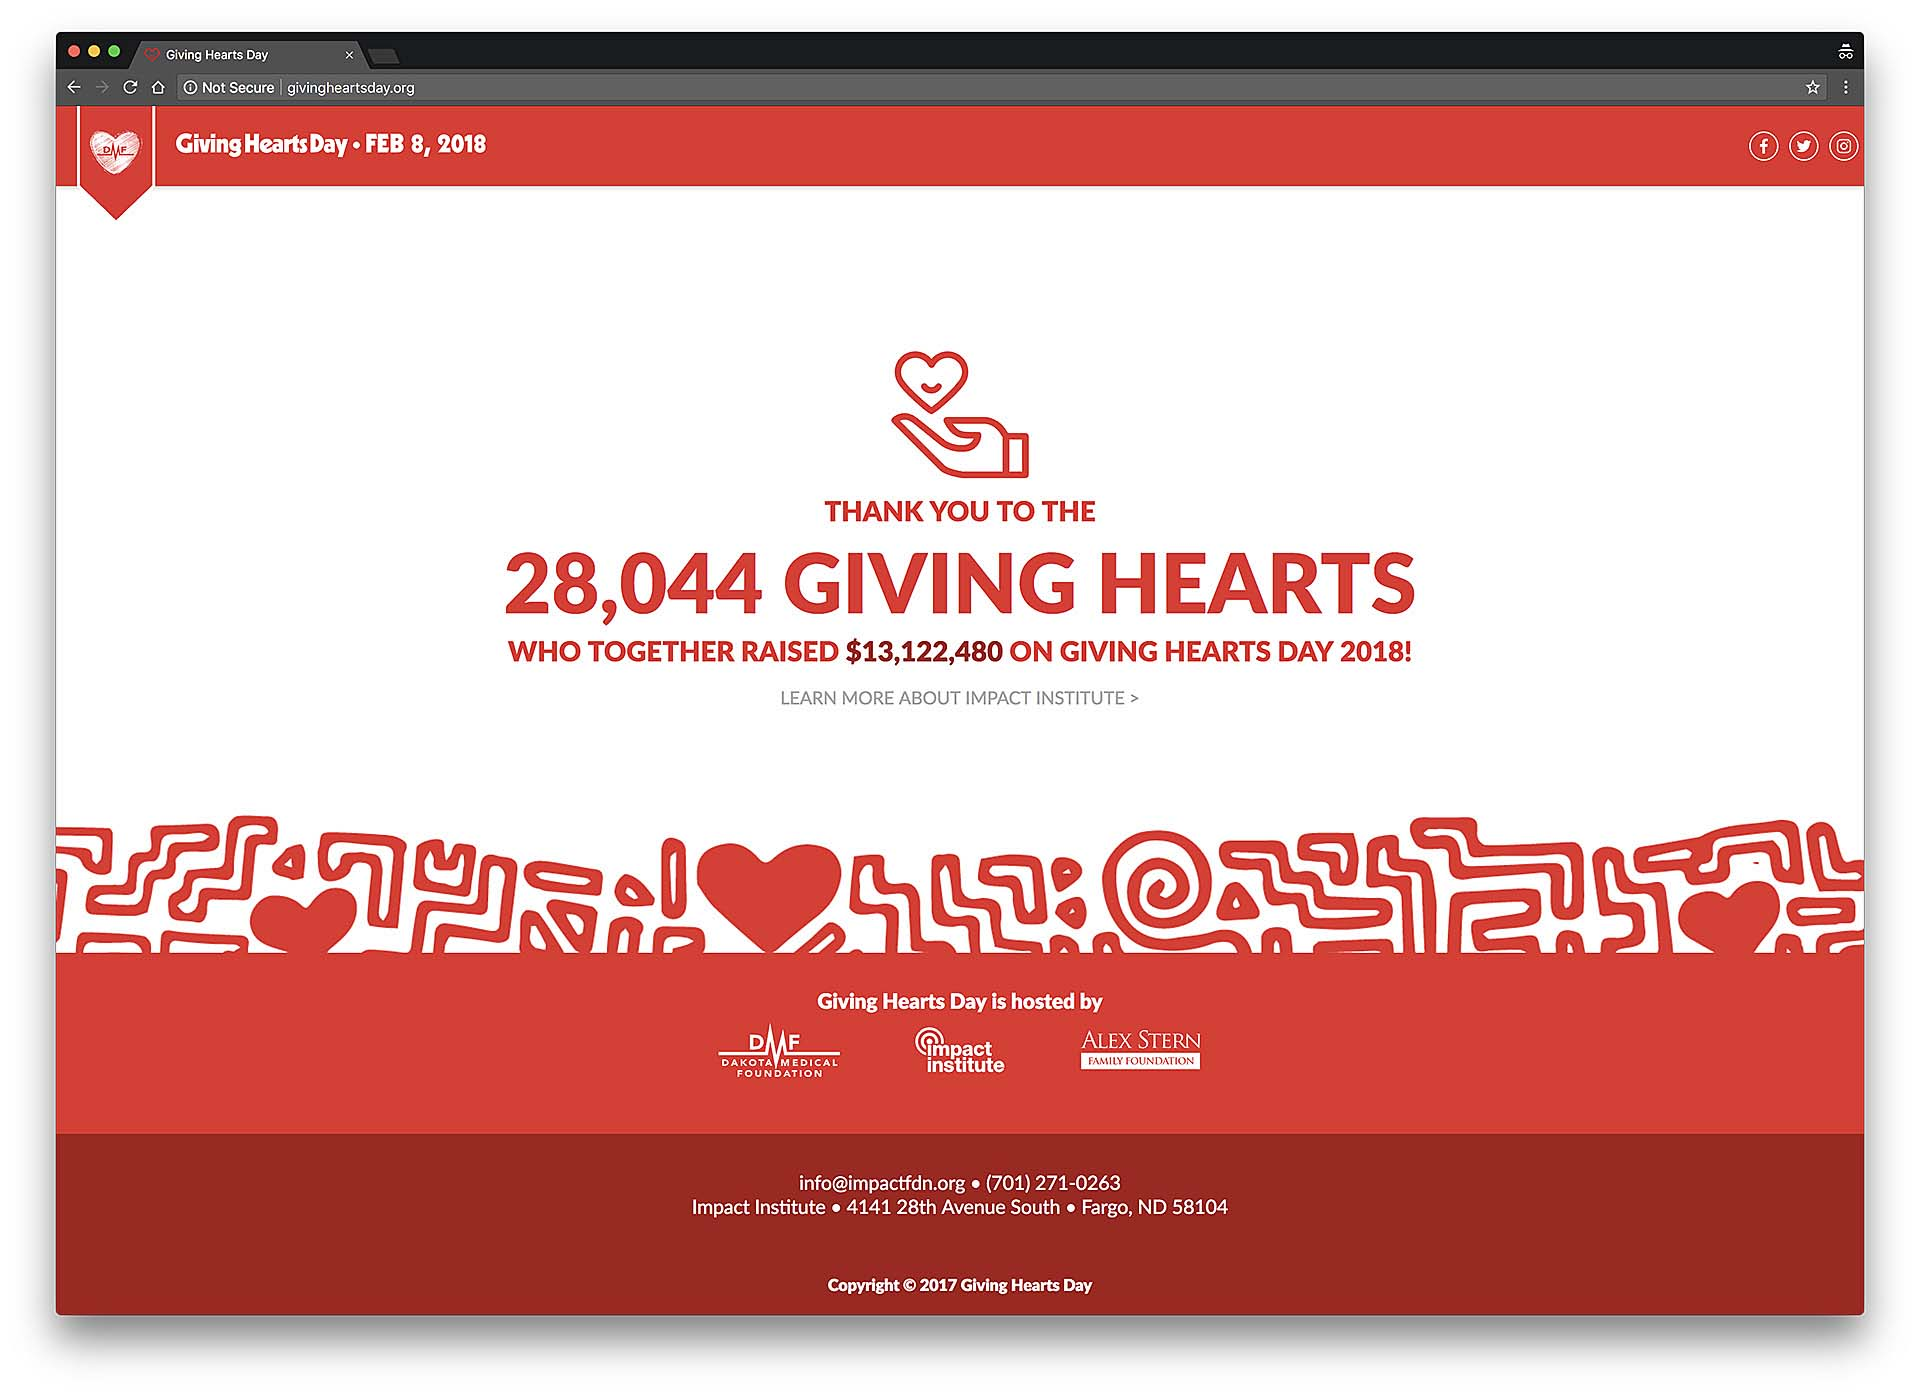 Screen capture of Giving Hearts Day one page site with final count of 28,044 Giving Hearts